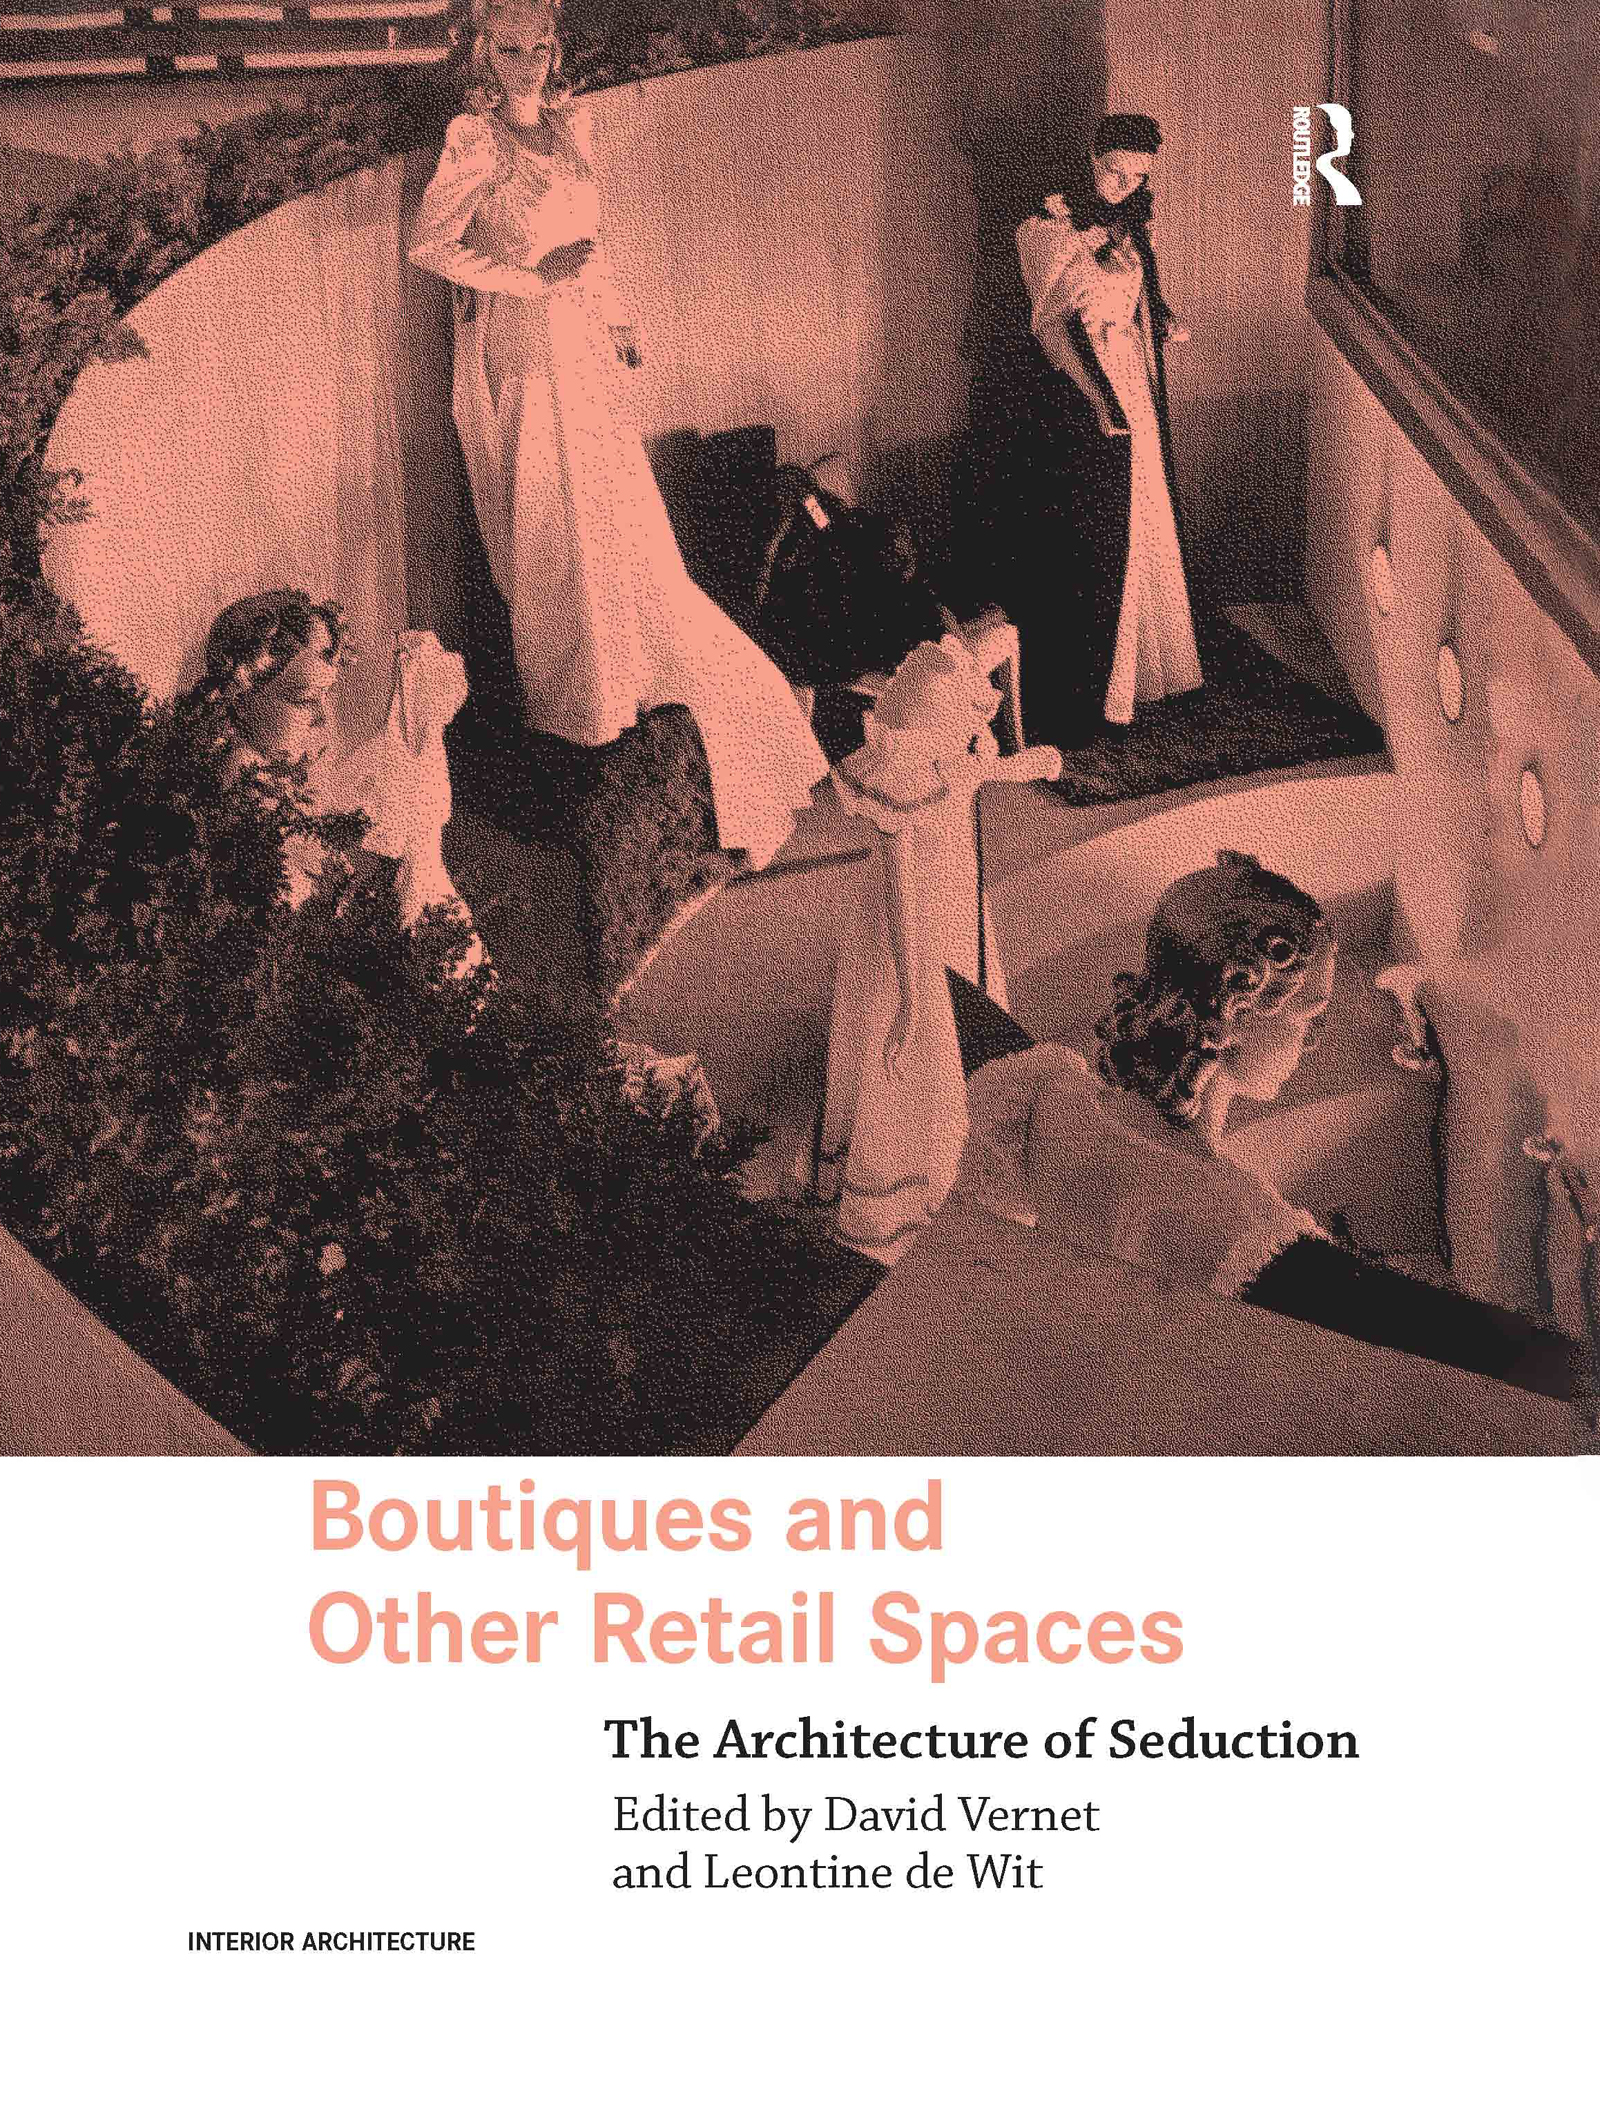 Boutiques and Other Retail Spaces: The Architecture of Seduction book cover